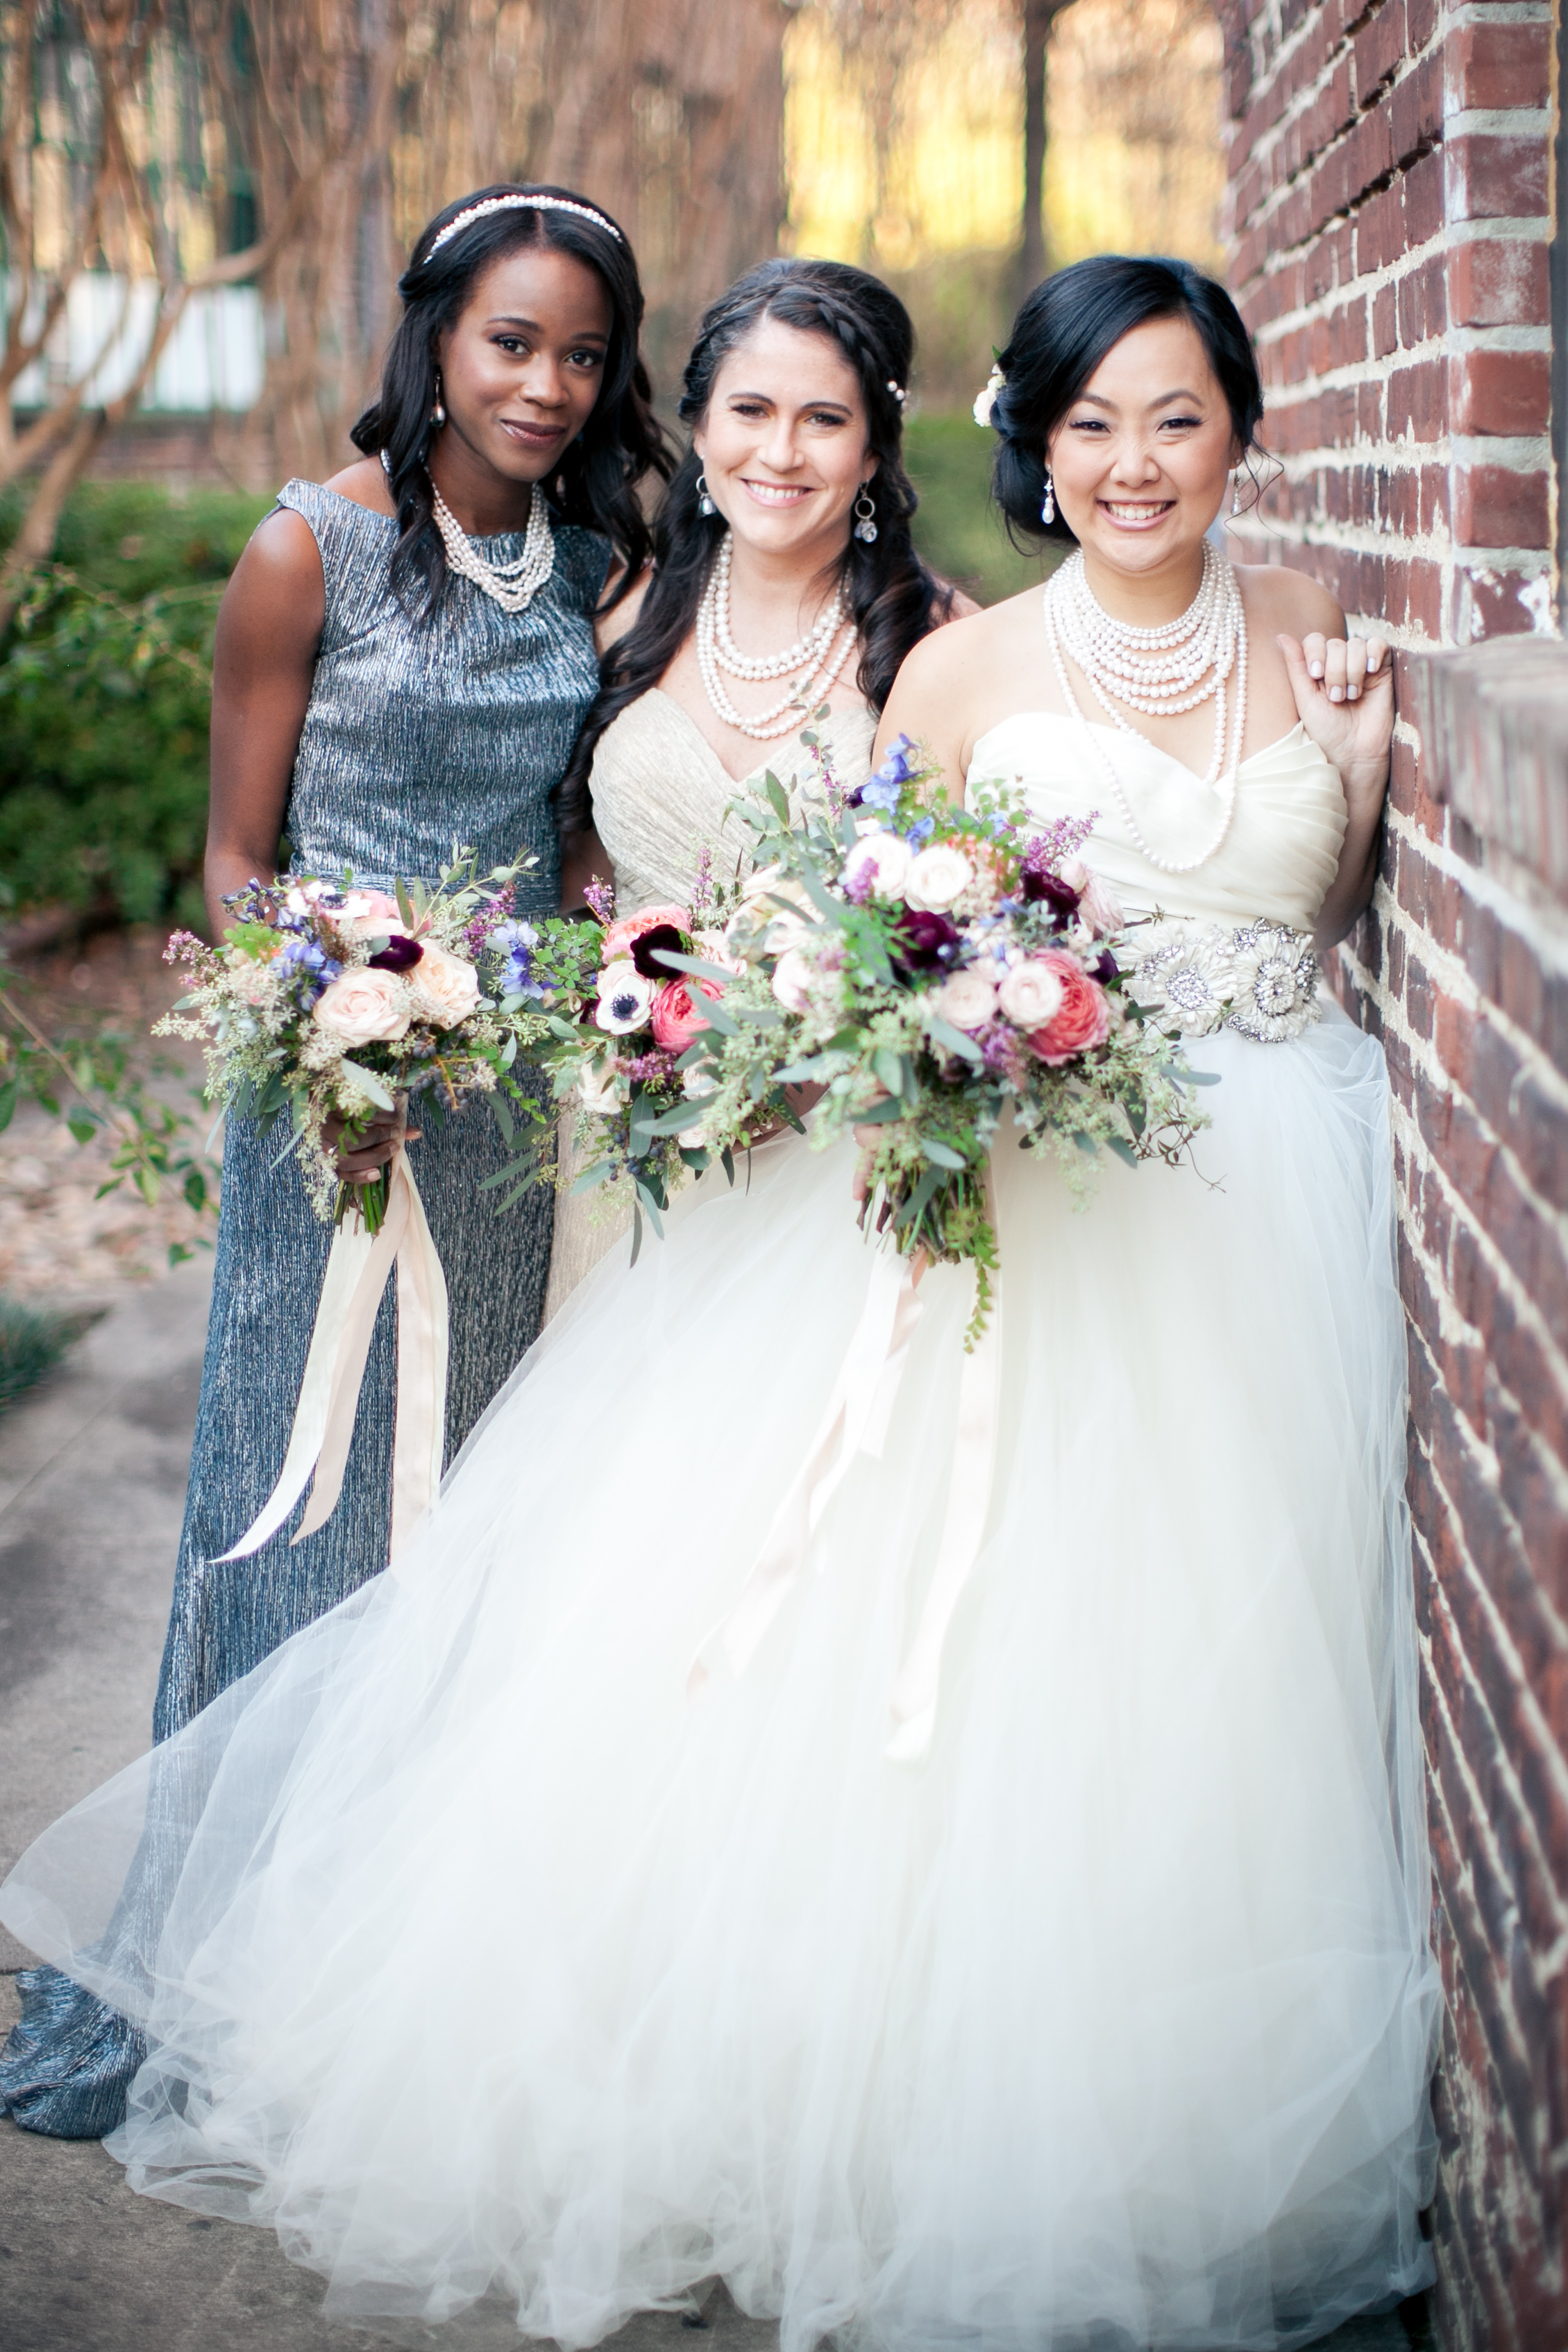 Bridal Party with organic bouquet including anemones and garden roses // Southeast Floral Design